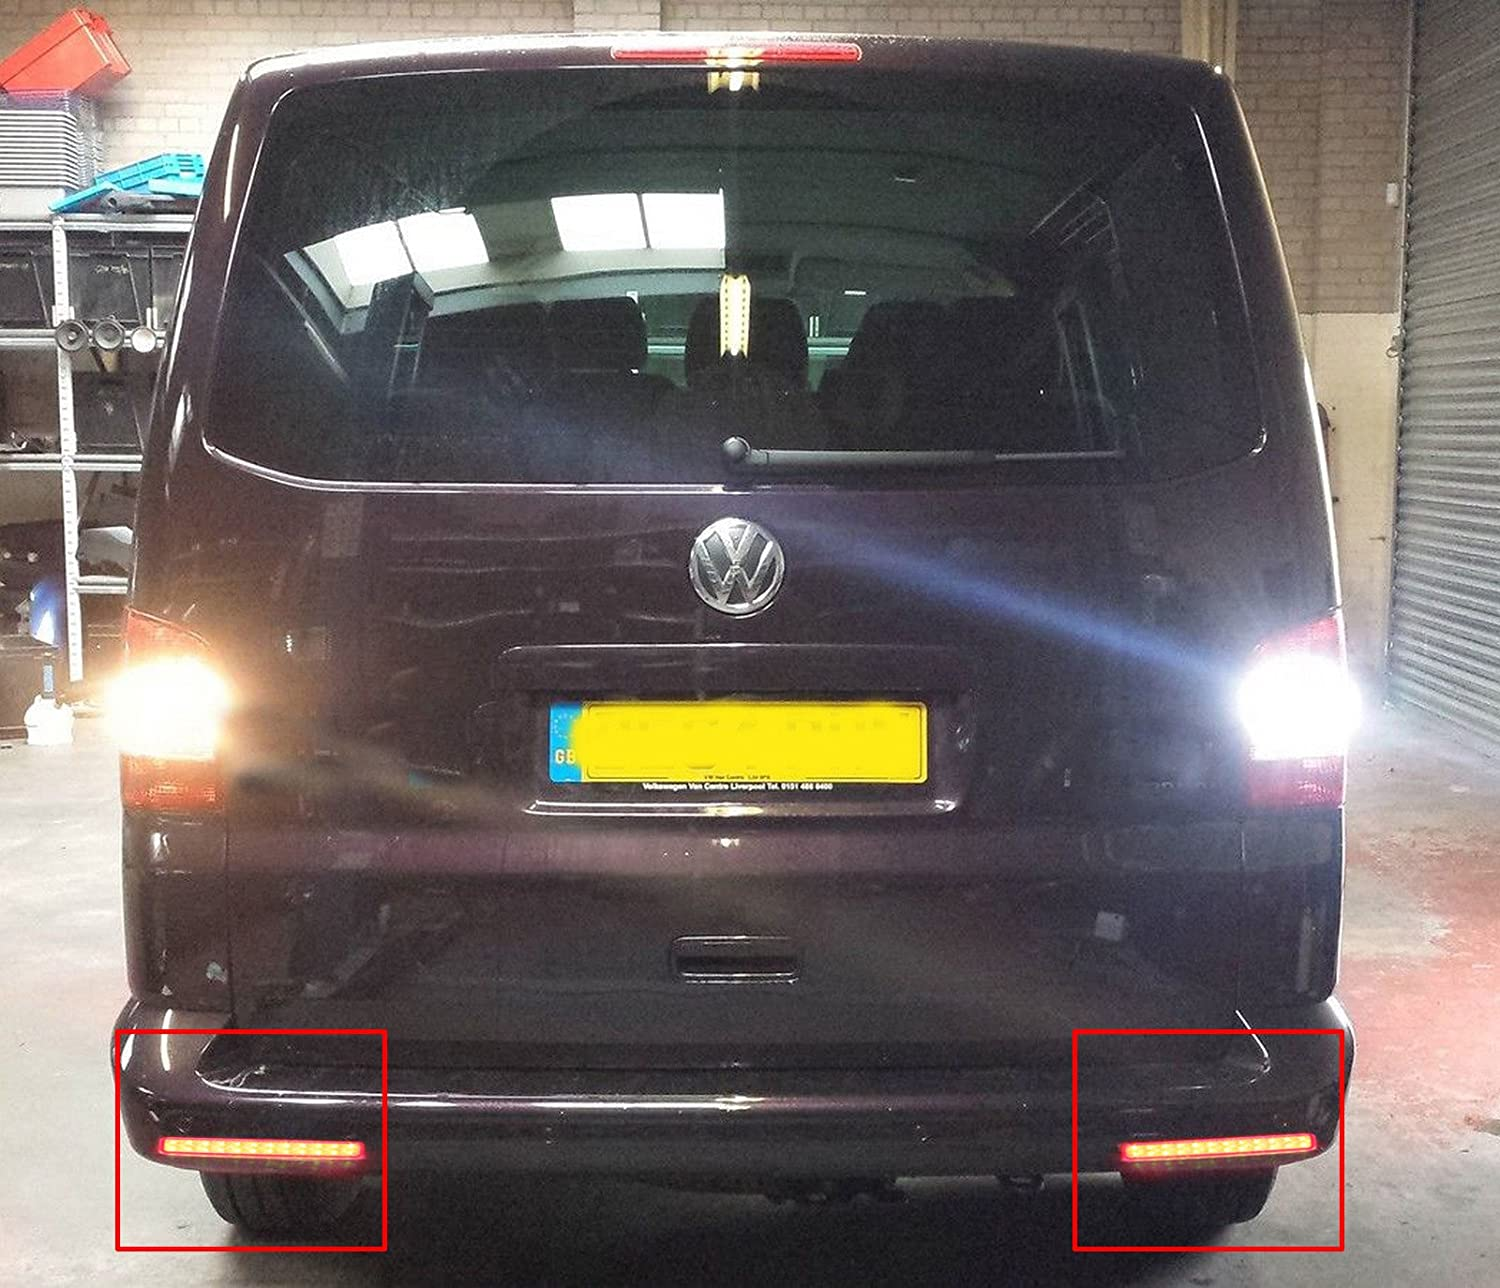 bslighting VW TRANSPORTER T5 Caravelle, Multivan parachoques reflector LED cola freno Detener luz: Amazon.es: Coche y moto